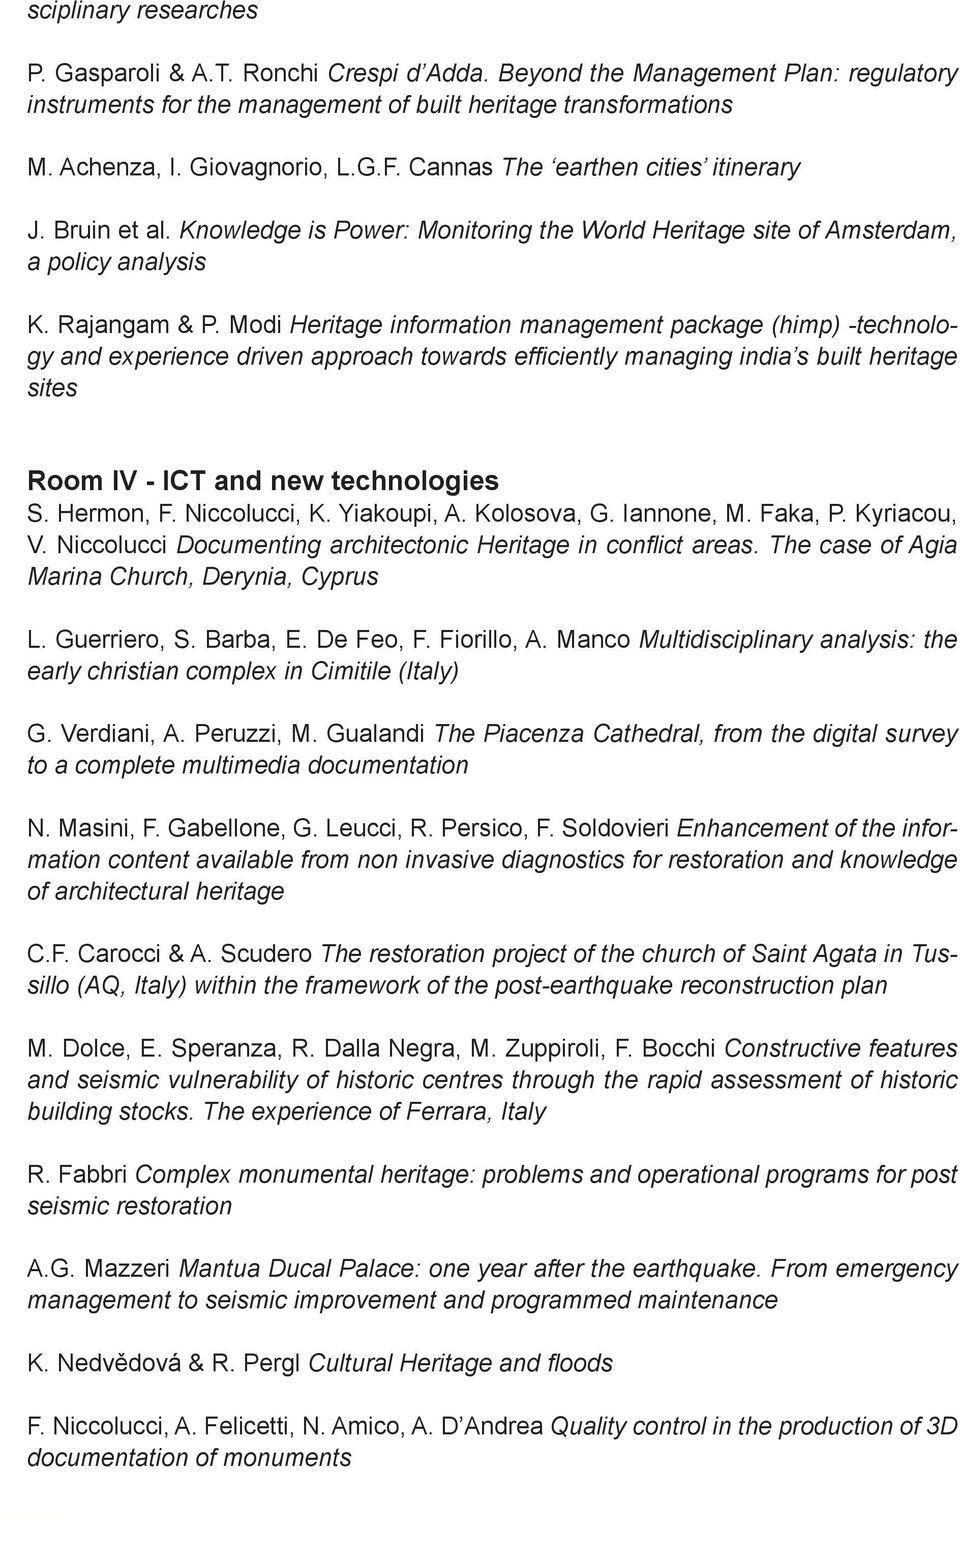 Modi Heritage information management package (himp) -technology and experience driven approach towards effi ciently managing india s built heritage sites Room IV - ICT and new technologies S.